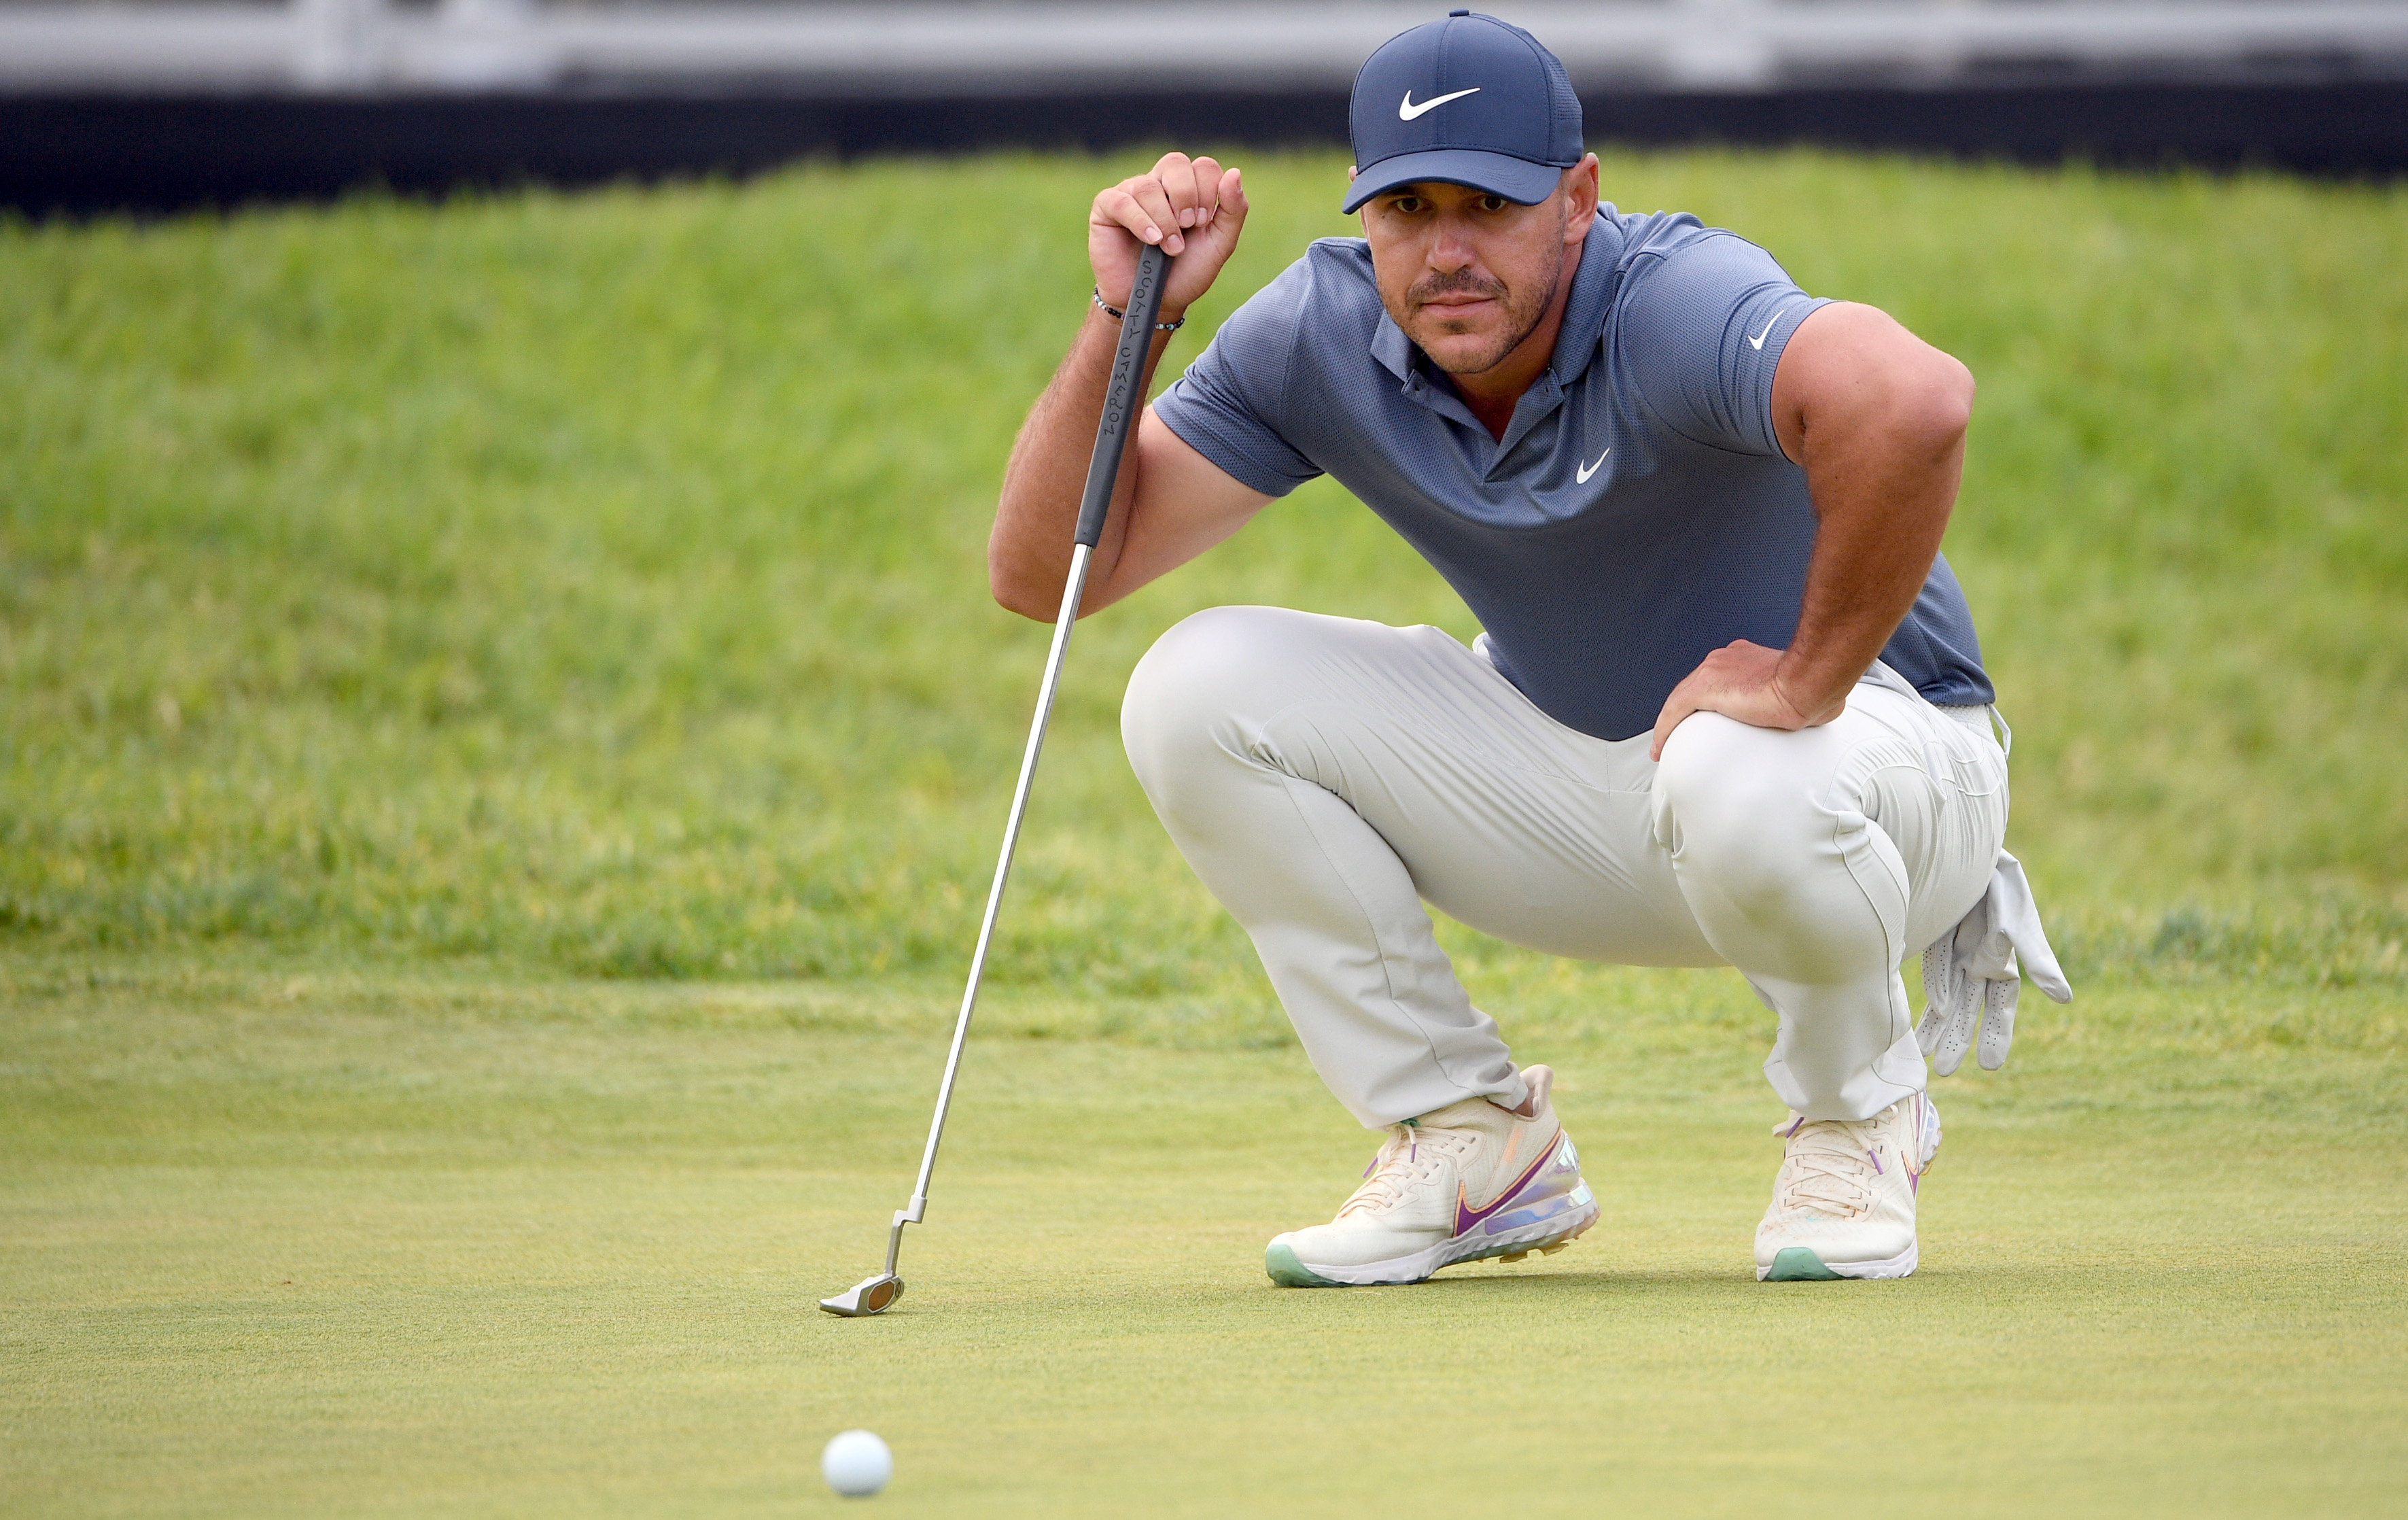 Jun 18, 2021; San Diego, California, USA; Brooks Koepka lines up a putt on the 18th green during the second round of the U.S. Open golf tournament at Torrey Pines Golf Course. Mandatory Credit: Orlando Ramirez-USA TODAY Sports